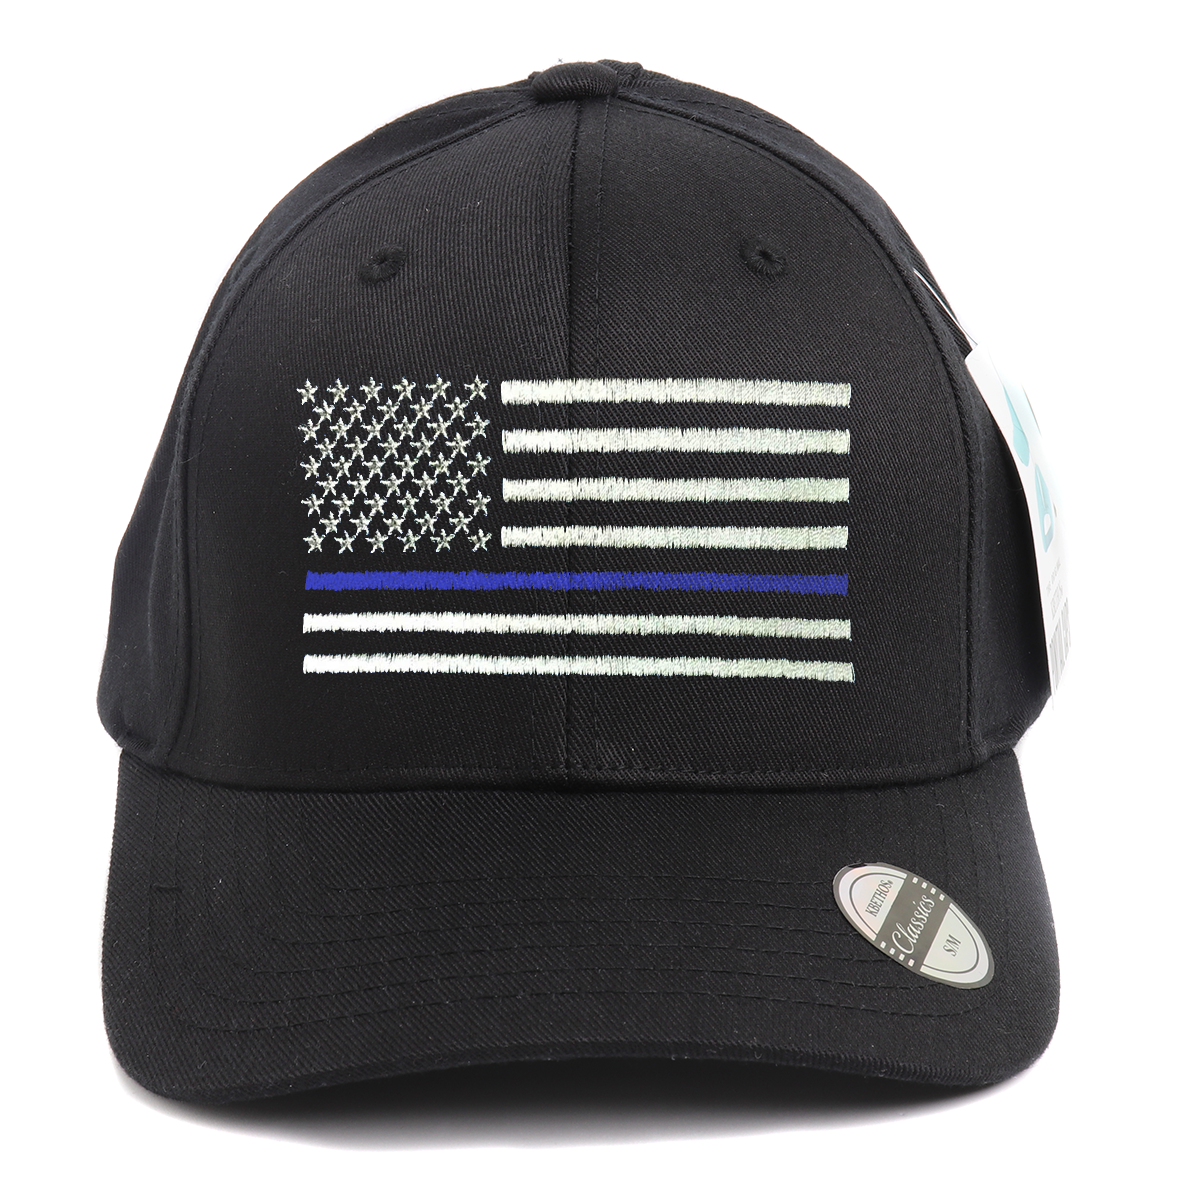 Thin Blue Line Flag Ponytail Spandex Headband Hat